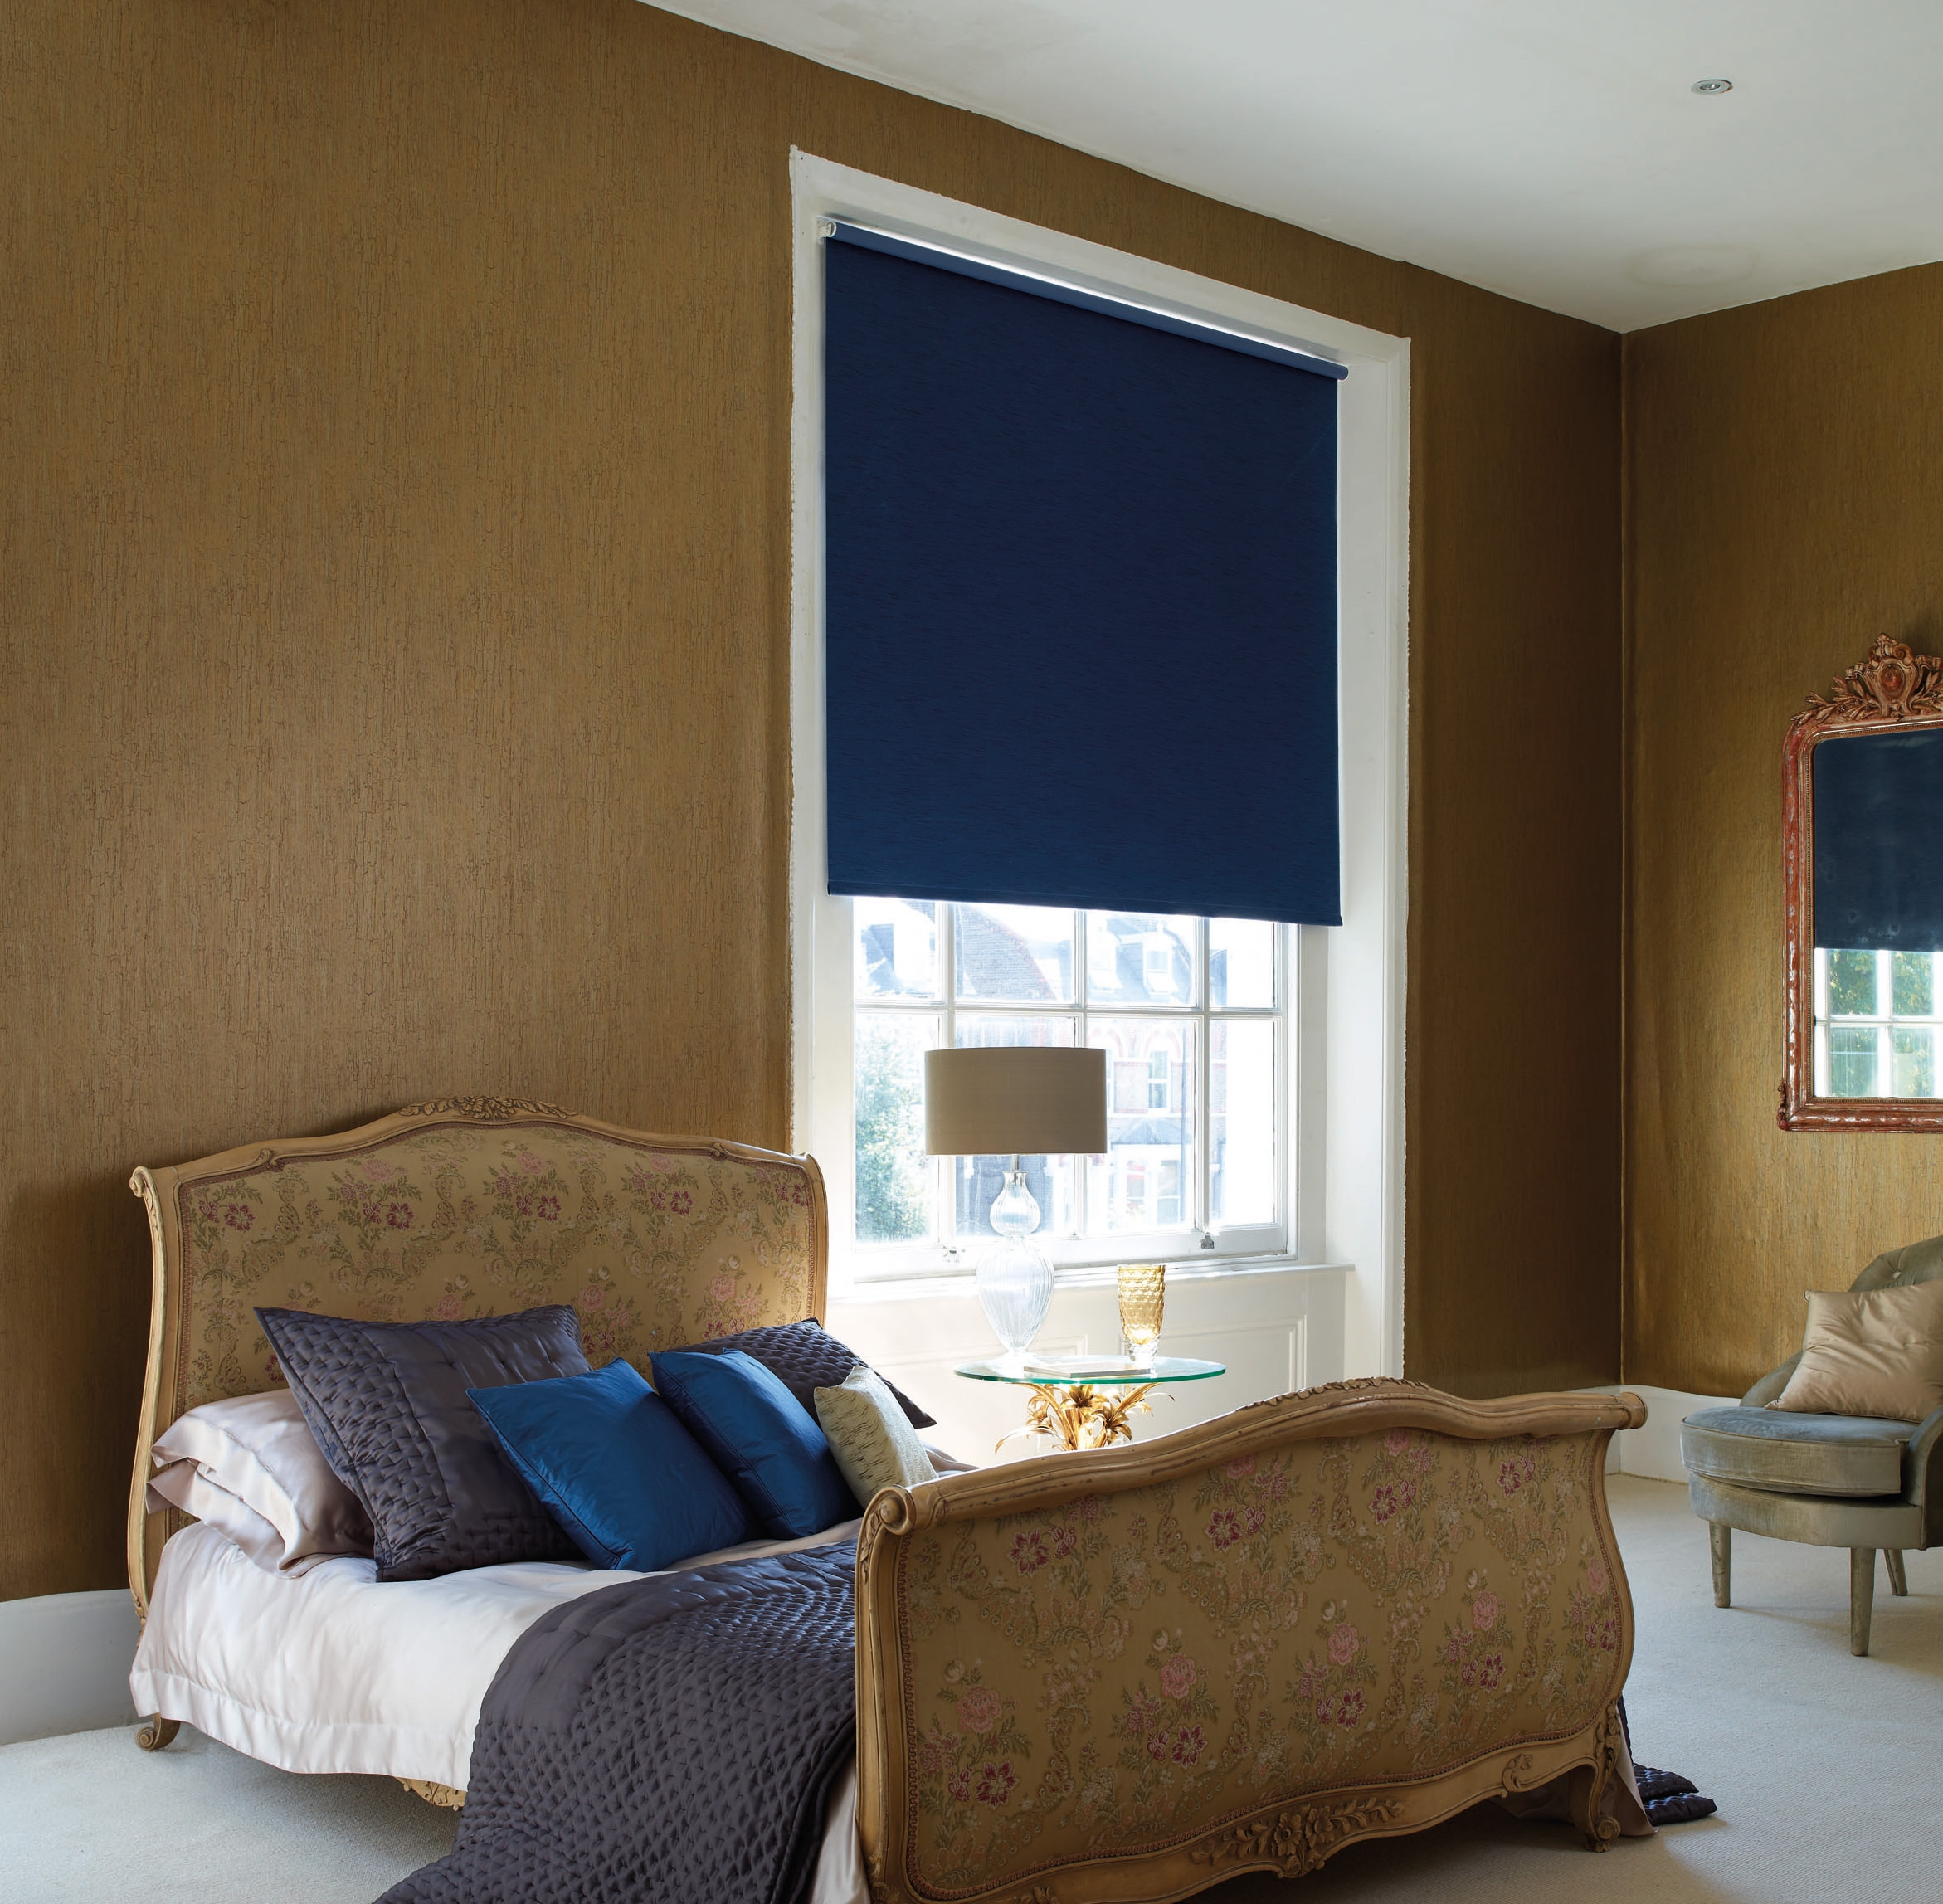 Cheapest Blinds Uk Ltd Cheap Roller Blinds In Blue Roman Blinds (Image 9 of 15)